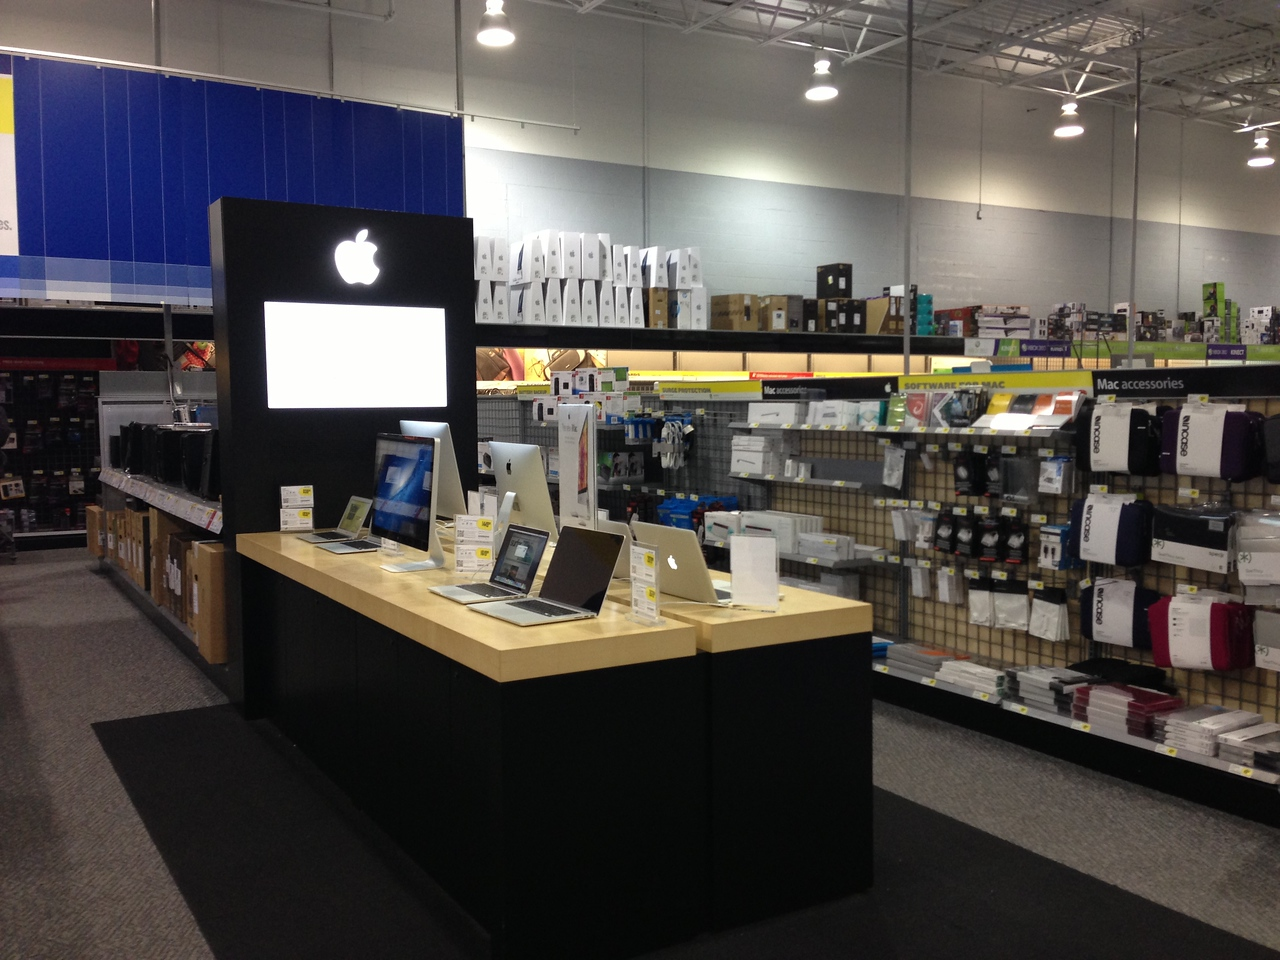 The Samsung-hired consultant at the Lewisville, Texas, Best Buy store says one advantage of his perch is that he has a chance to intercept would-be iPhone and iPad buyers before they make it to the Apple set-up toward the back of the store.